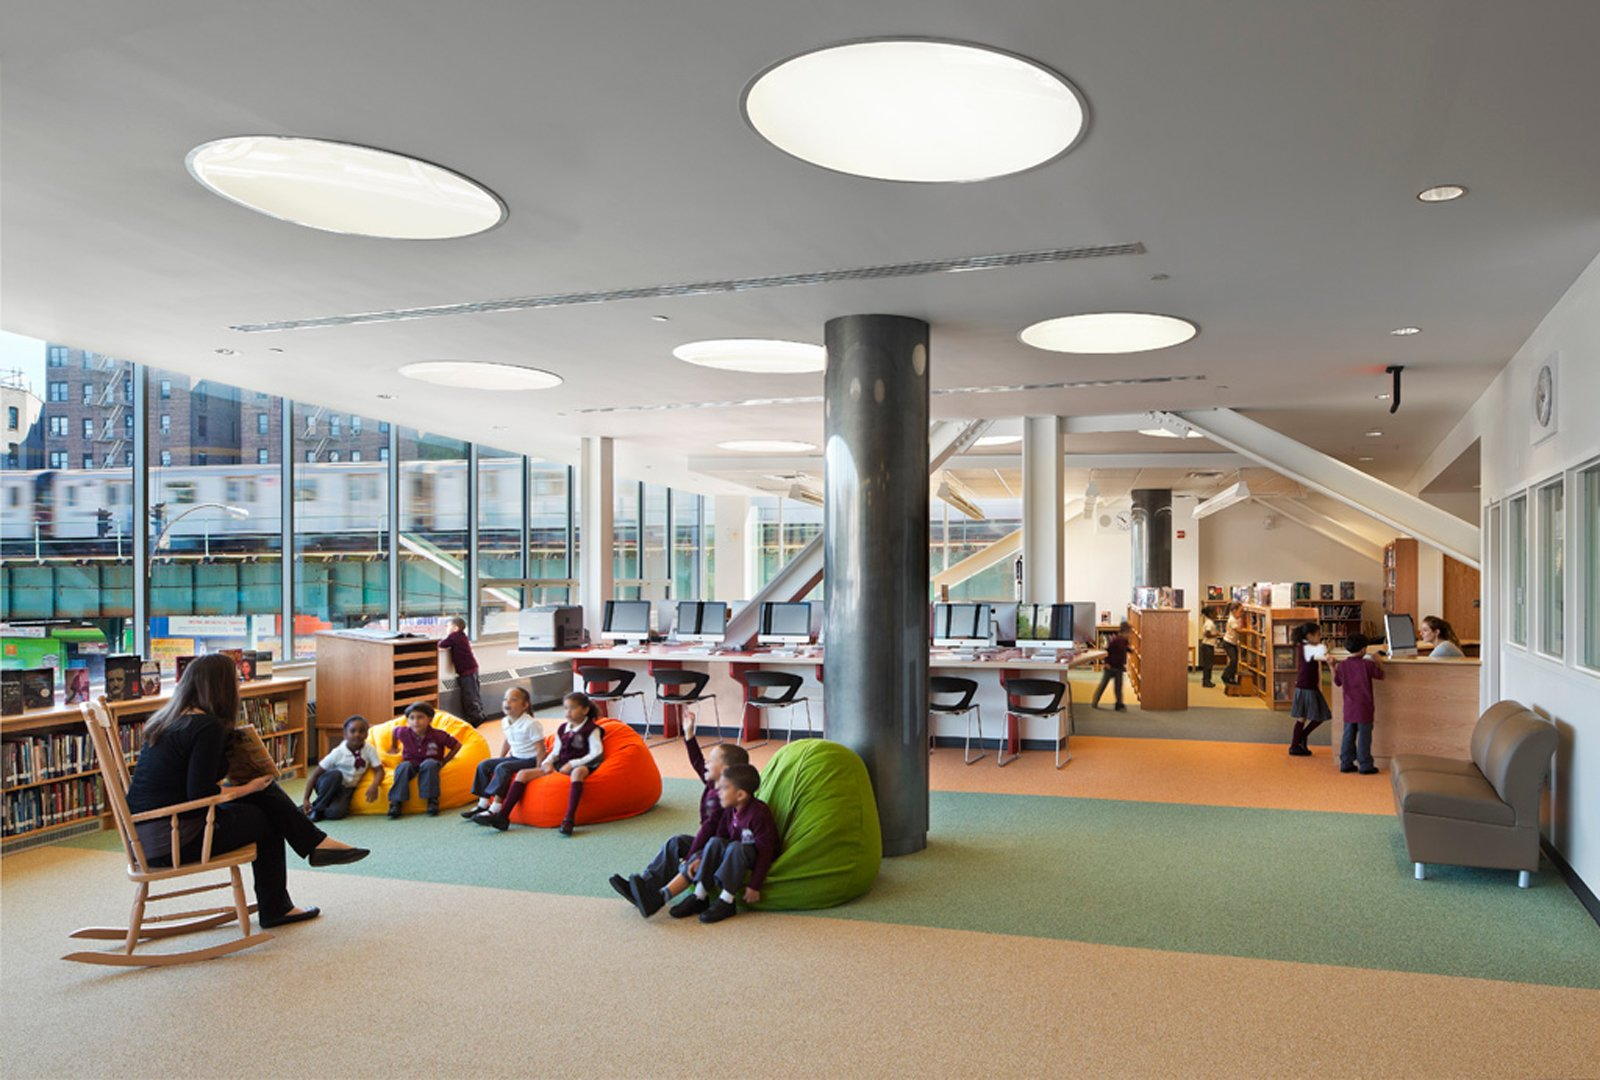 Schools are often large buildings that sit empty while not in use. New Settlement Community Campus in the Bronx is an example of a community benefiting from an educational facility as physical space. The public school is merged with a community center, and its facilities, including an amphitheater, are open to the public after hours.  New Settlement Community Campus was designed by Dattner Architects in association with Edelman Sultan Knox Wood/Architects. Photo by ©David Sundberg/Esto.  Photo 15 of 16 in Edgeless School: Design for Learning